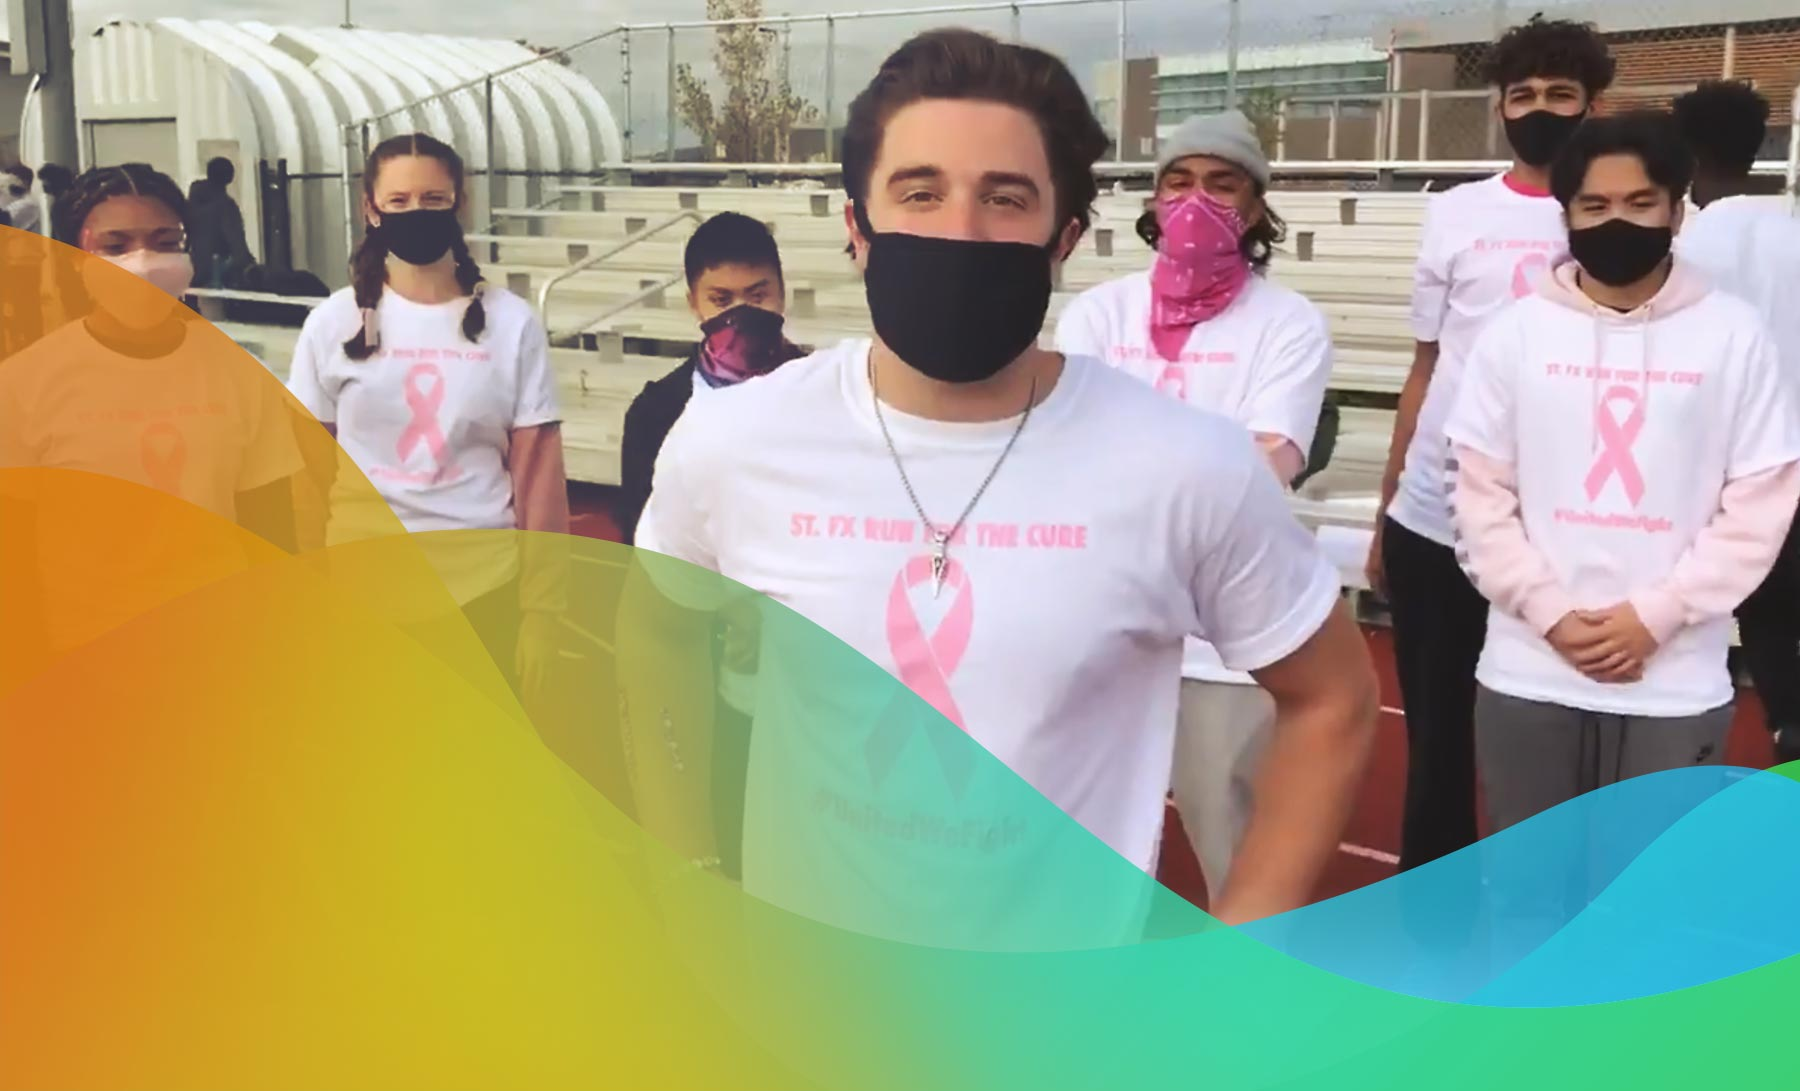 St. Francis Xavier Students Run for the Cure